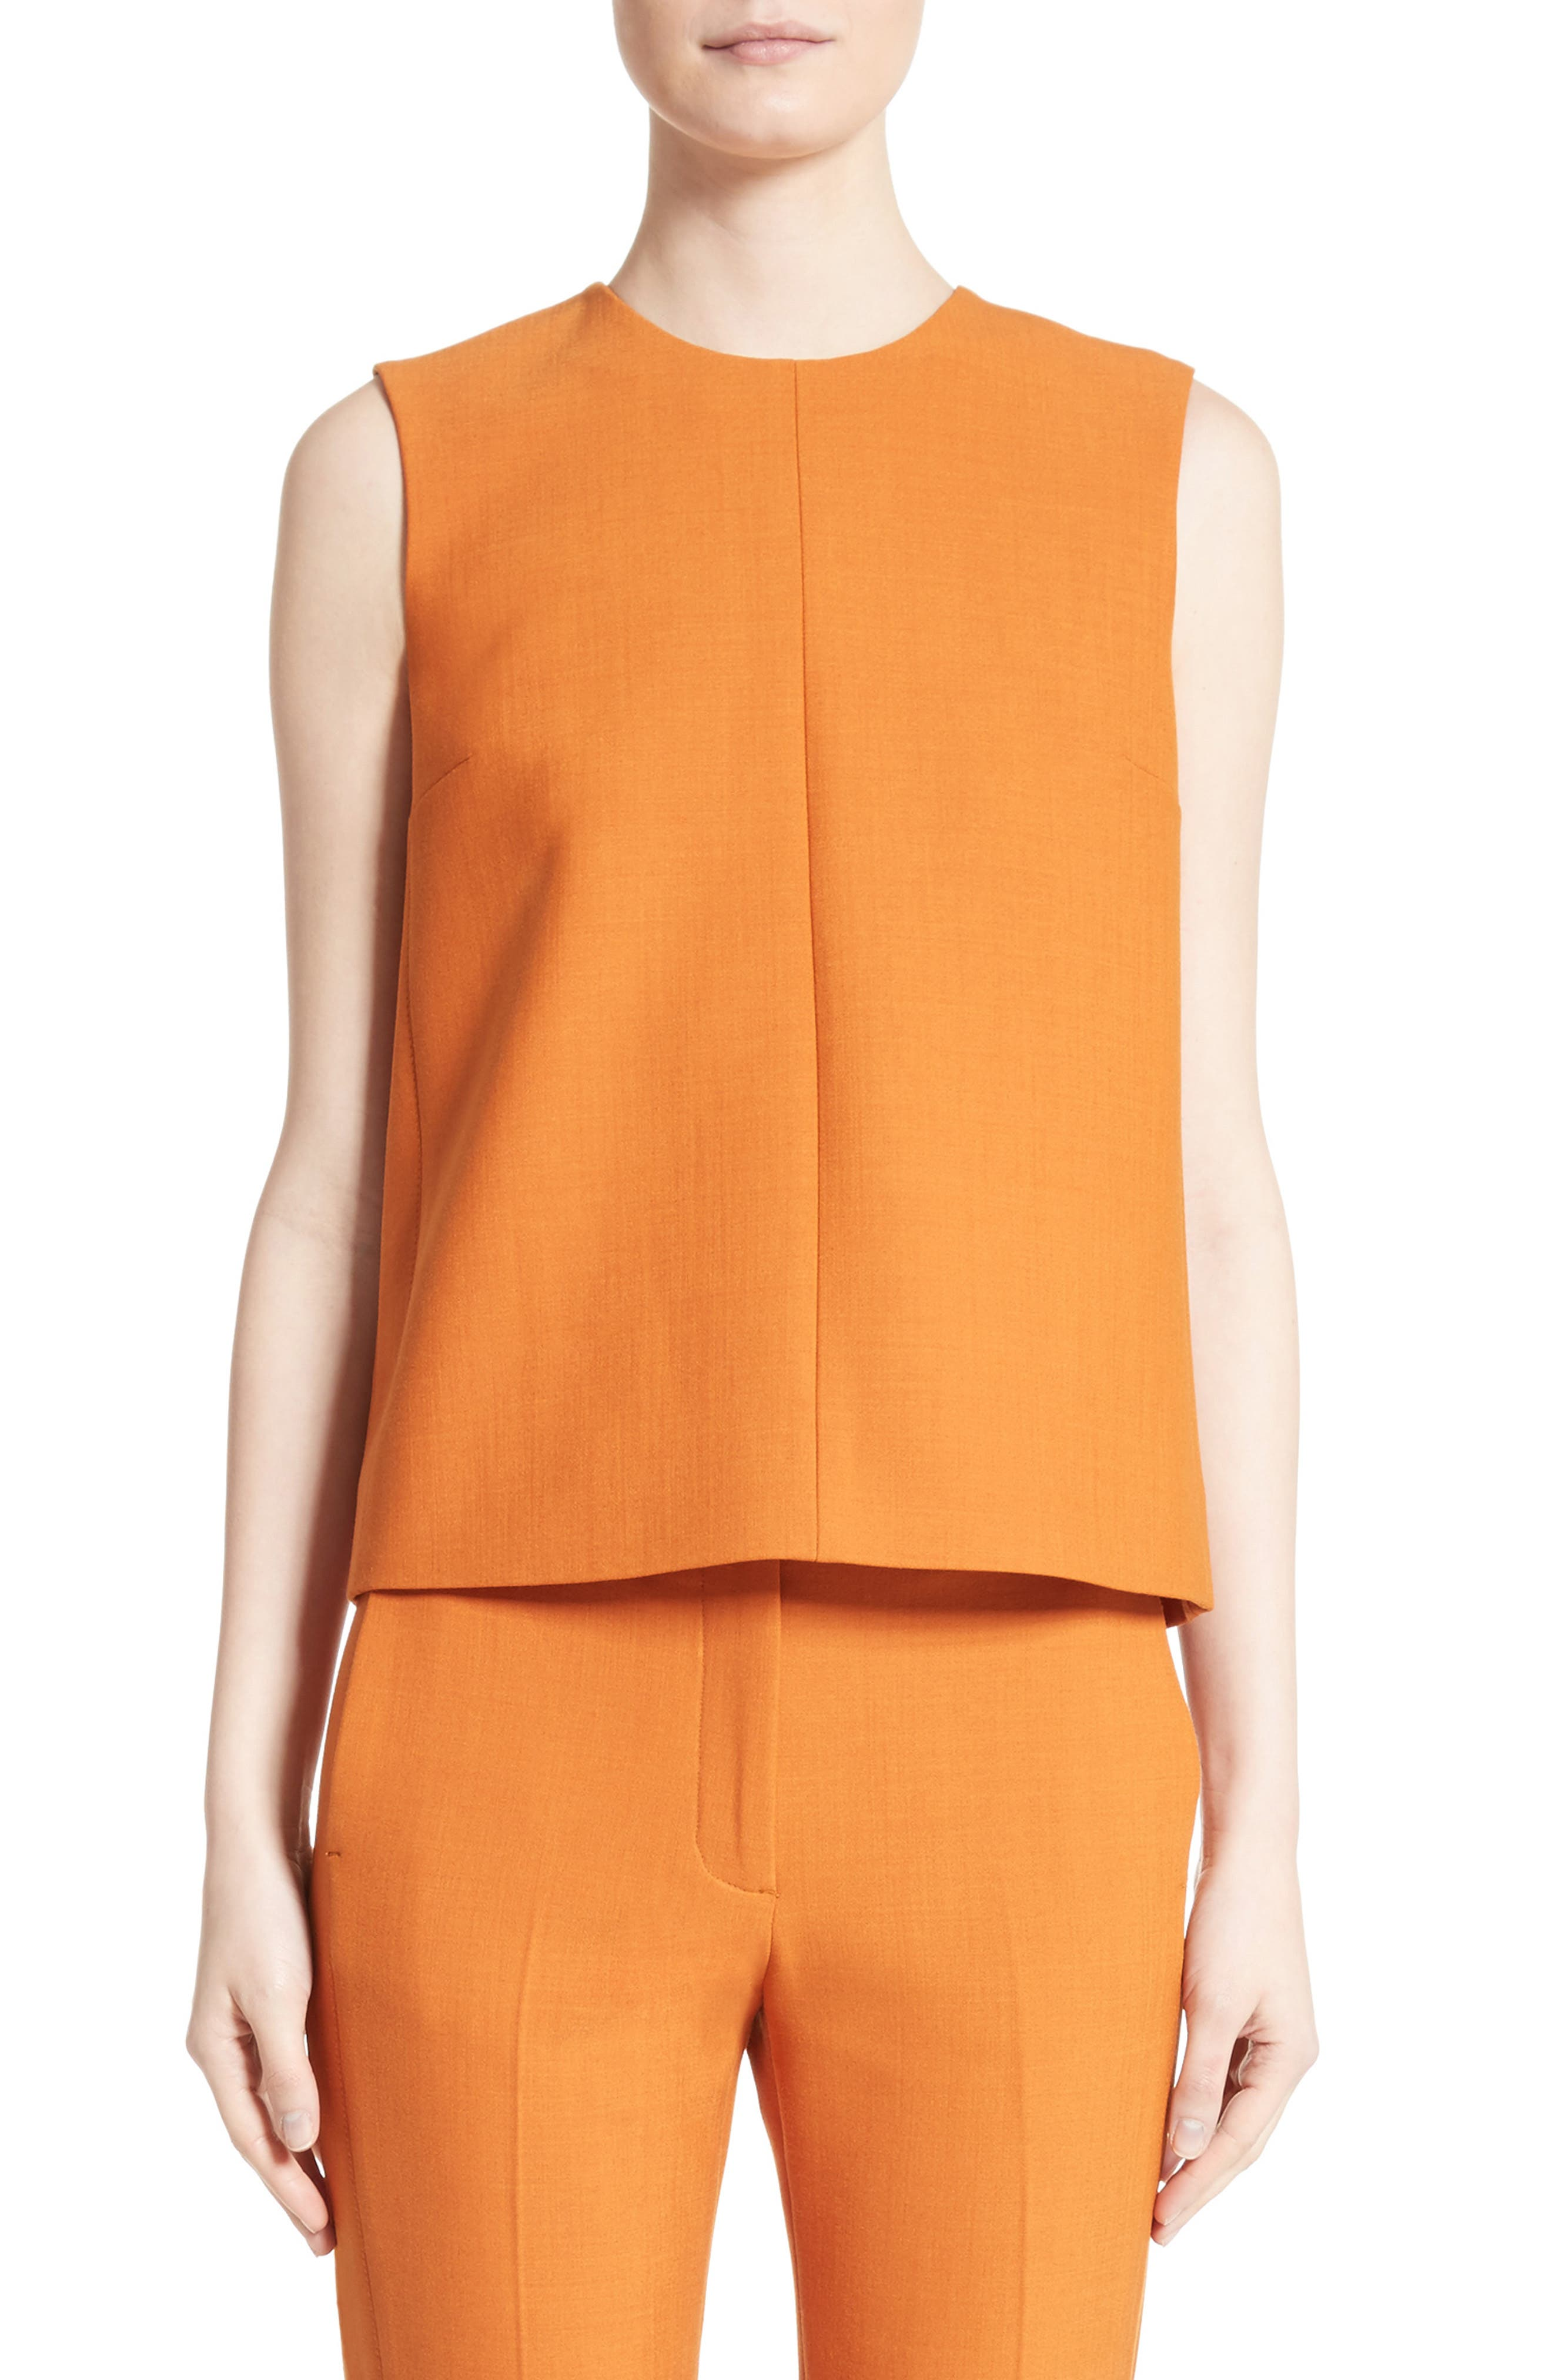 Main Image - Victoria, Victoria Beckham Sleeveless Top